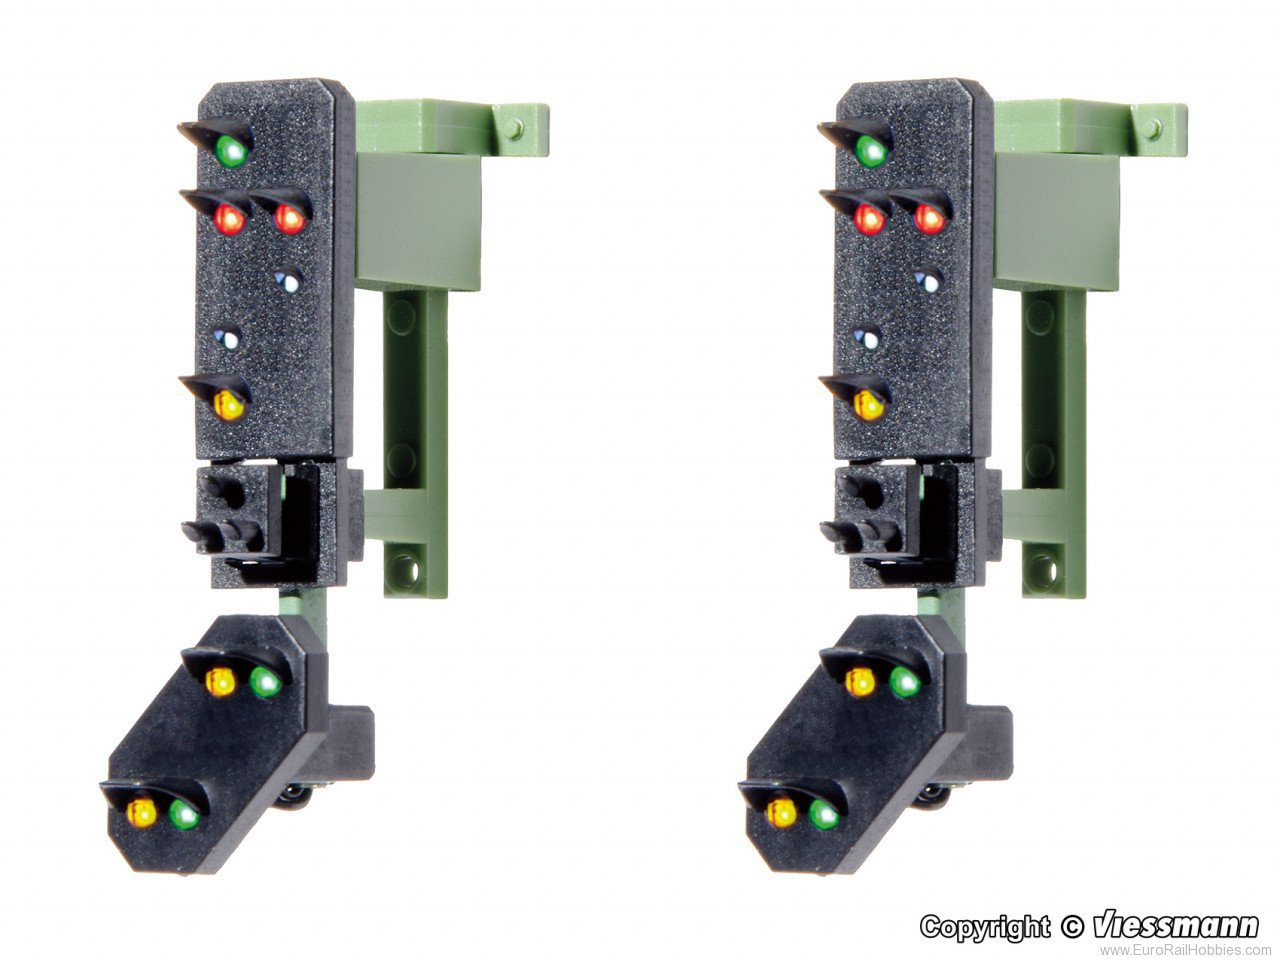 Viessmann 4751 HO Daylight signal heads with distant signal